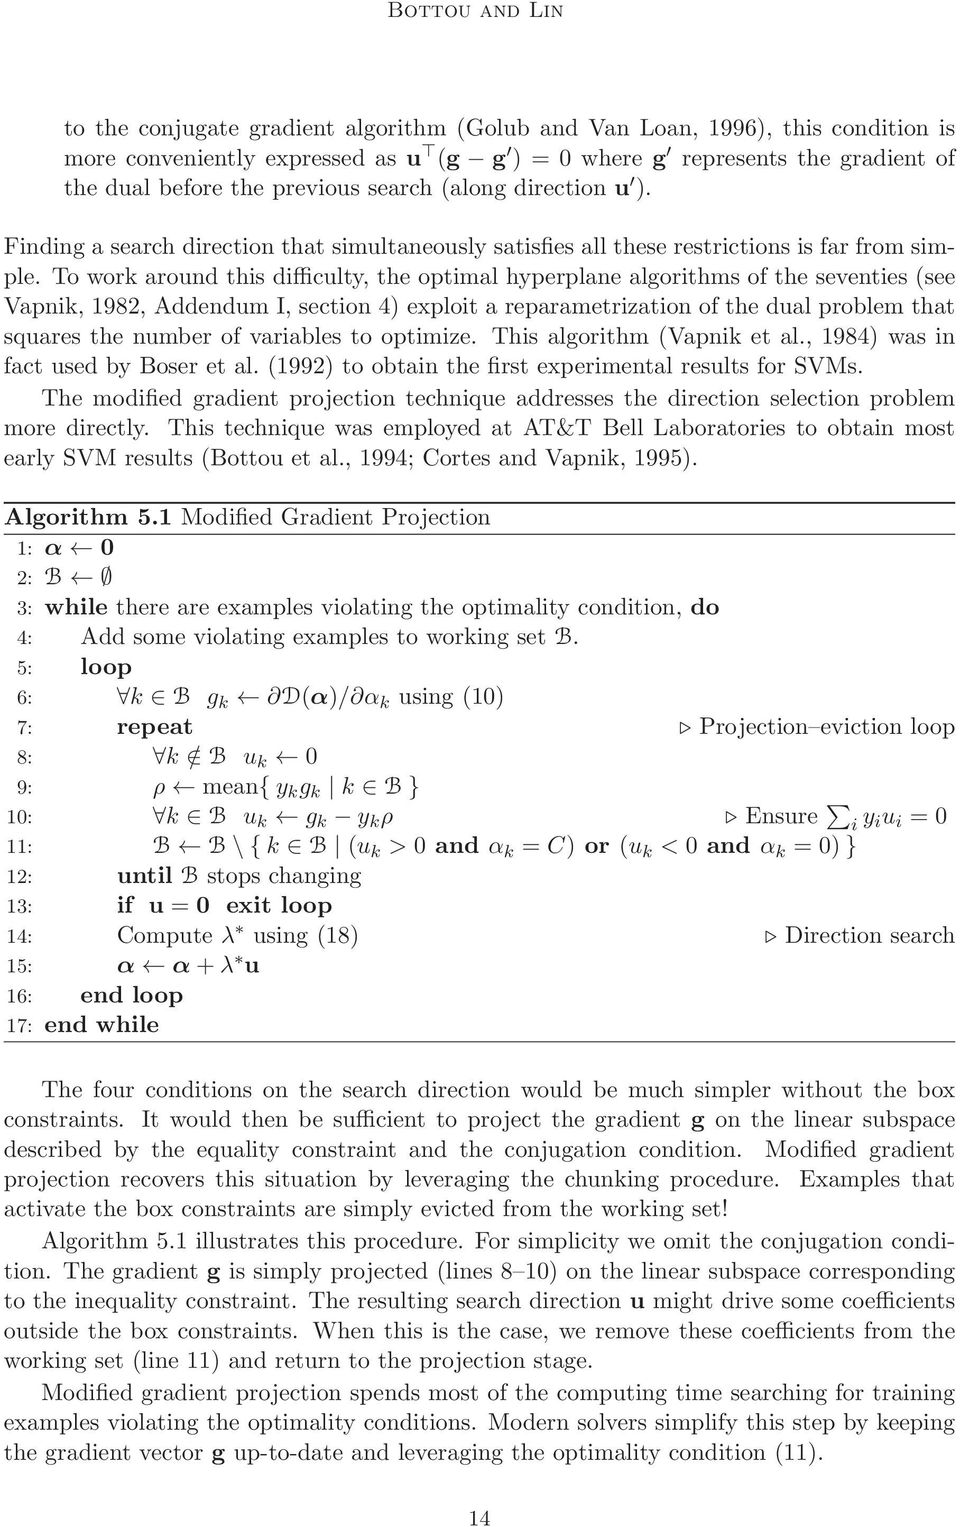 To work around this difficulty, the optimal hyperplane algorithms of the seventies (see Vapnik, 1982, Addendum I, section 4) exploit a reparametrization of the dual problem that squares the number of